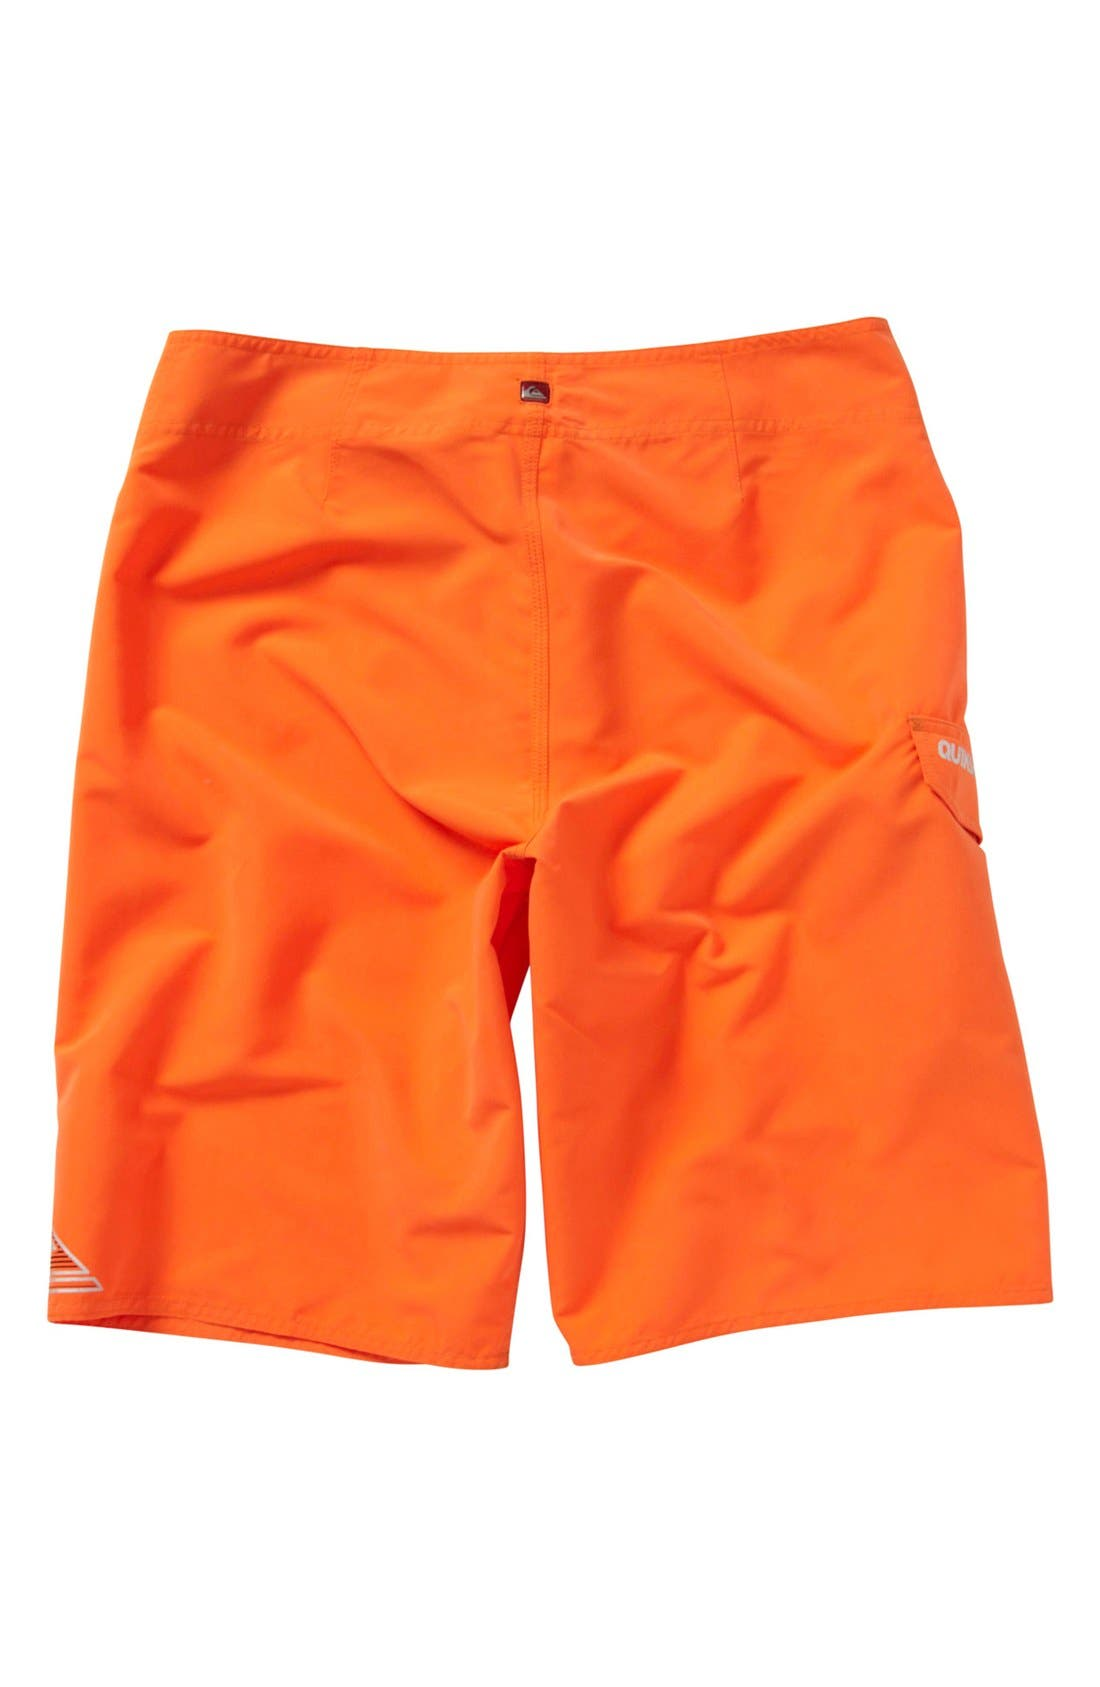 Alternate Image 2  - Quiksilver 'Stomping' Board Shorts (Big Boys)